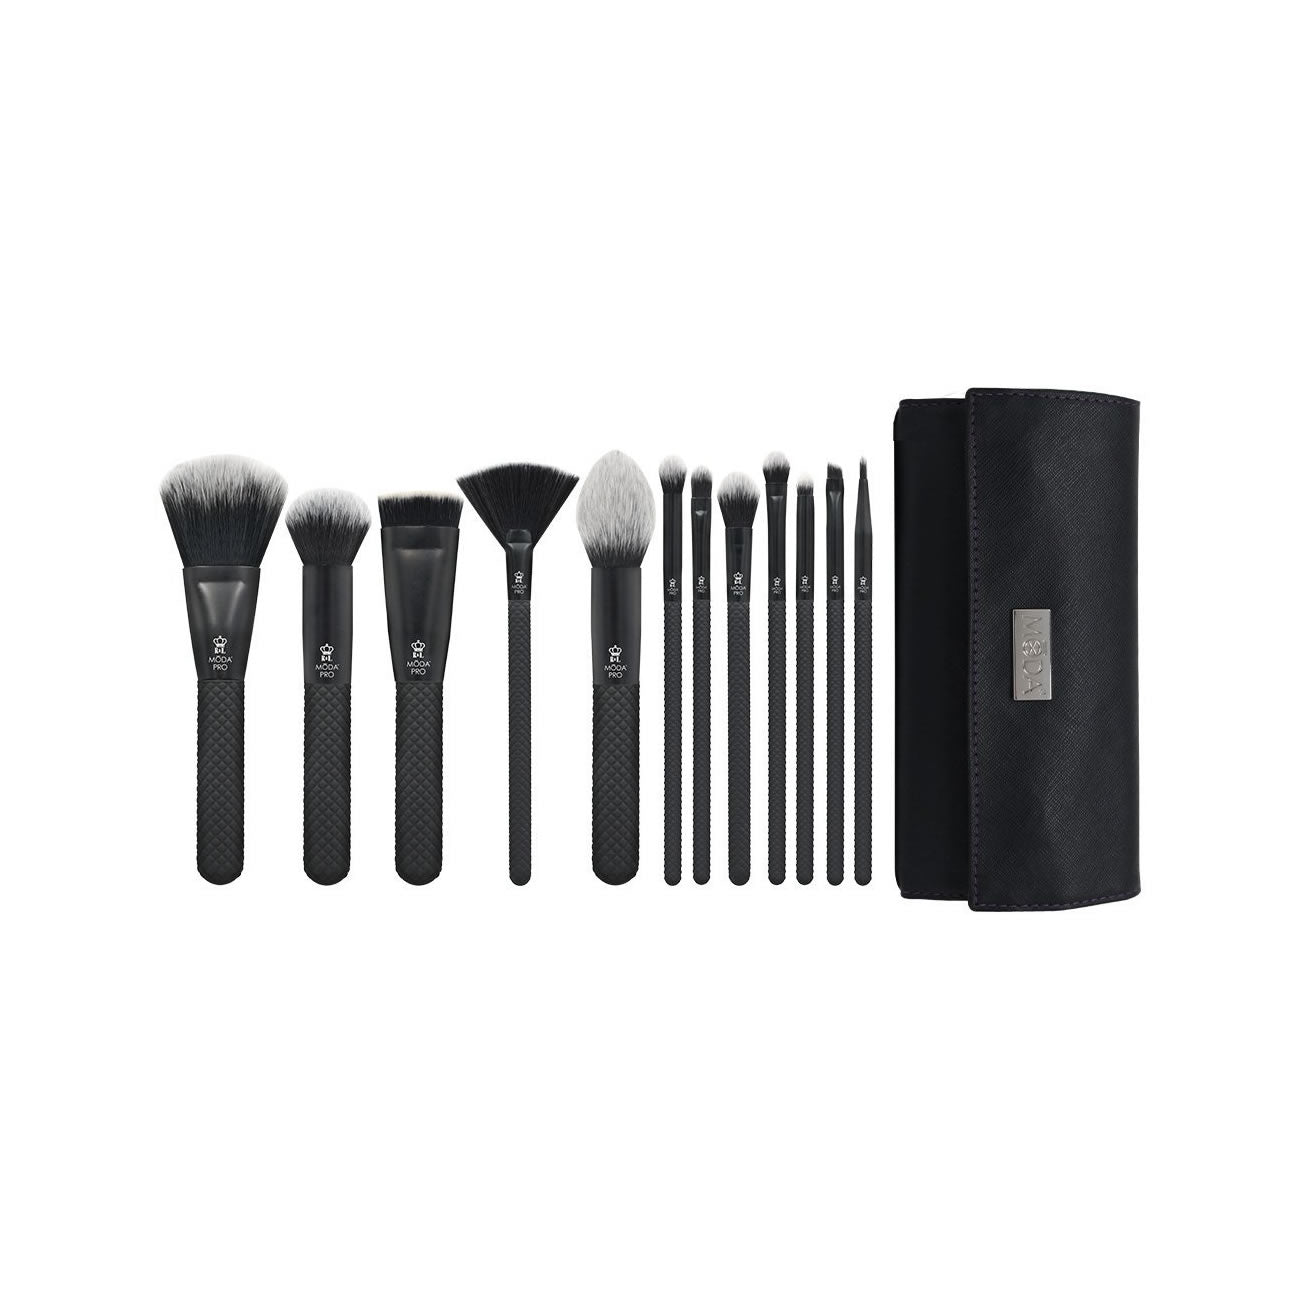 Royal & Langnickel MODA Pro 13pc Full Face Wrap Kit